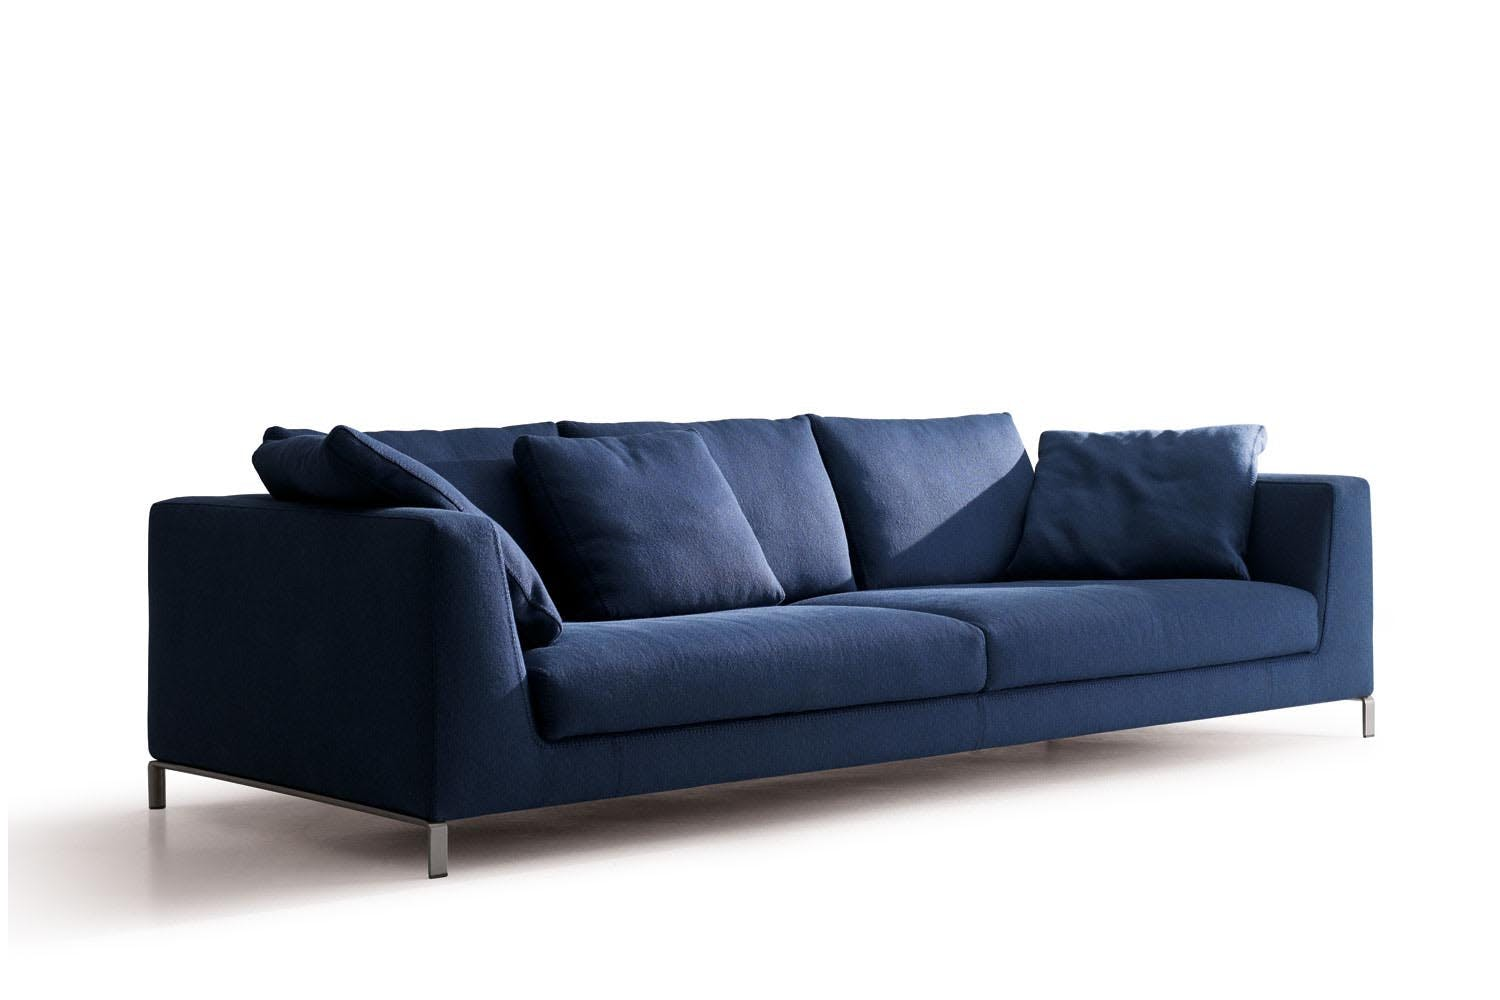 ray sofa by antonio citterio for b b italia space furniture. Black Bedroom Furniture Sets. Home Design Ideas